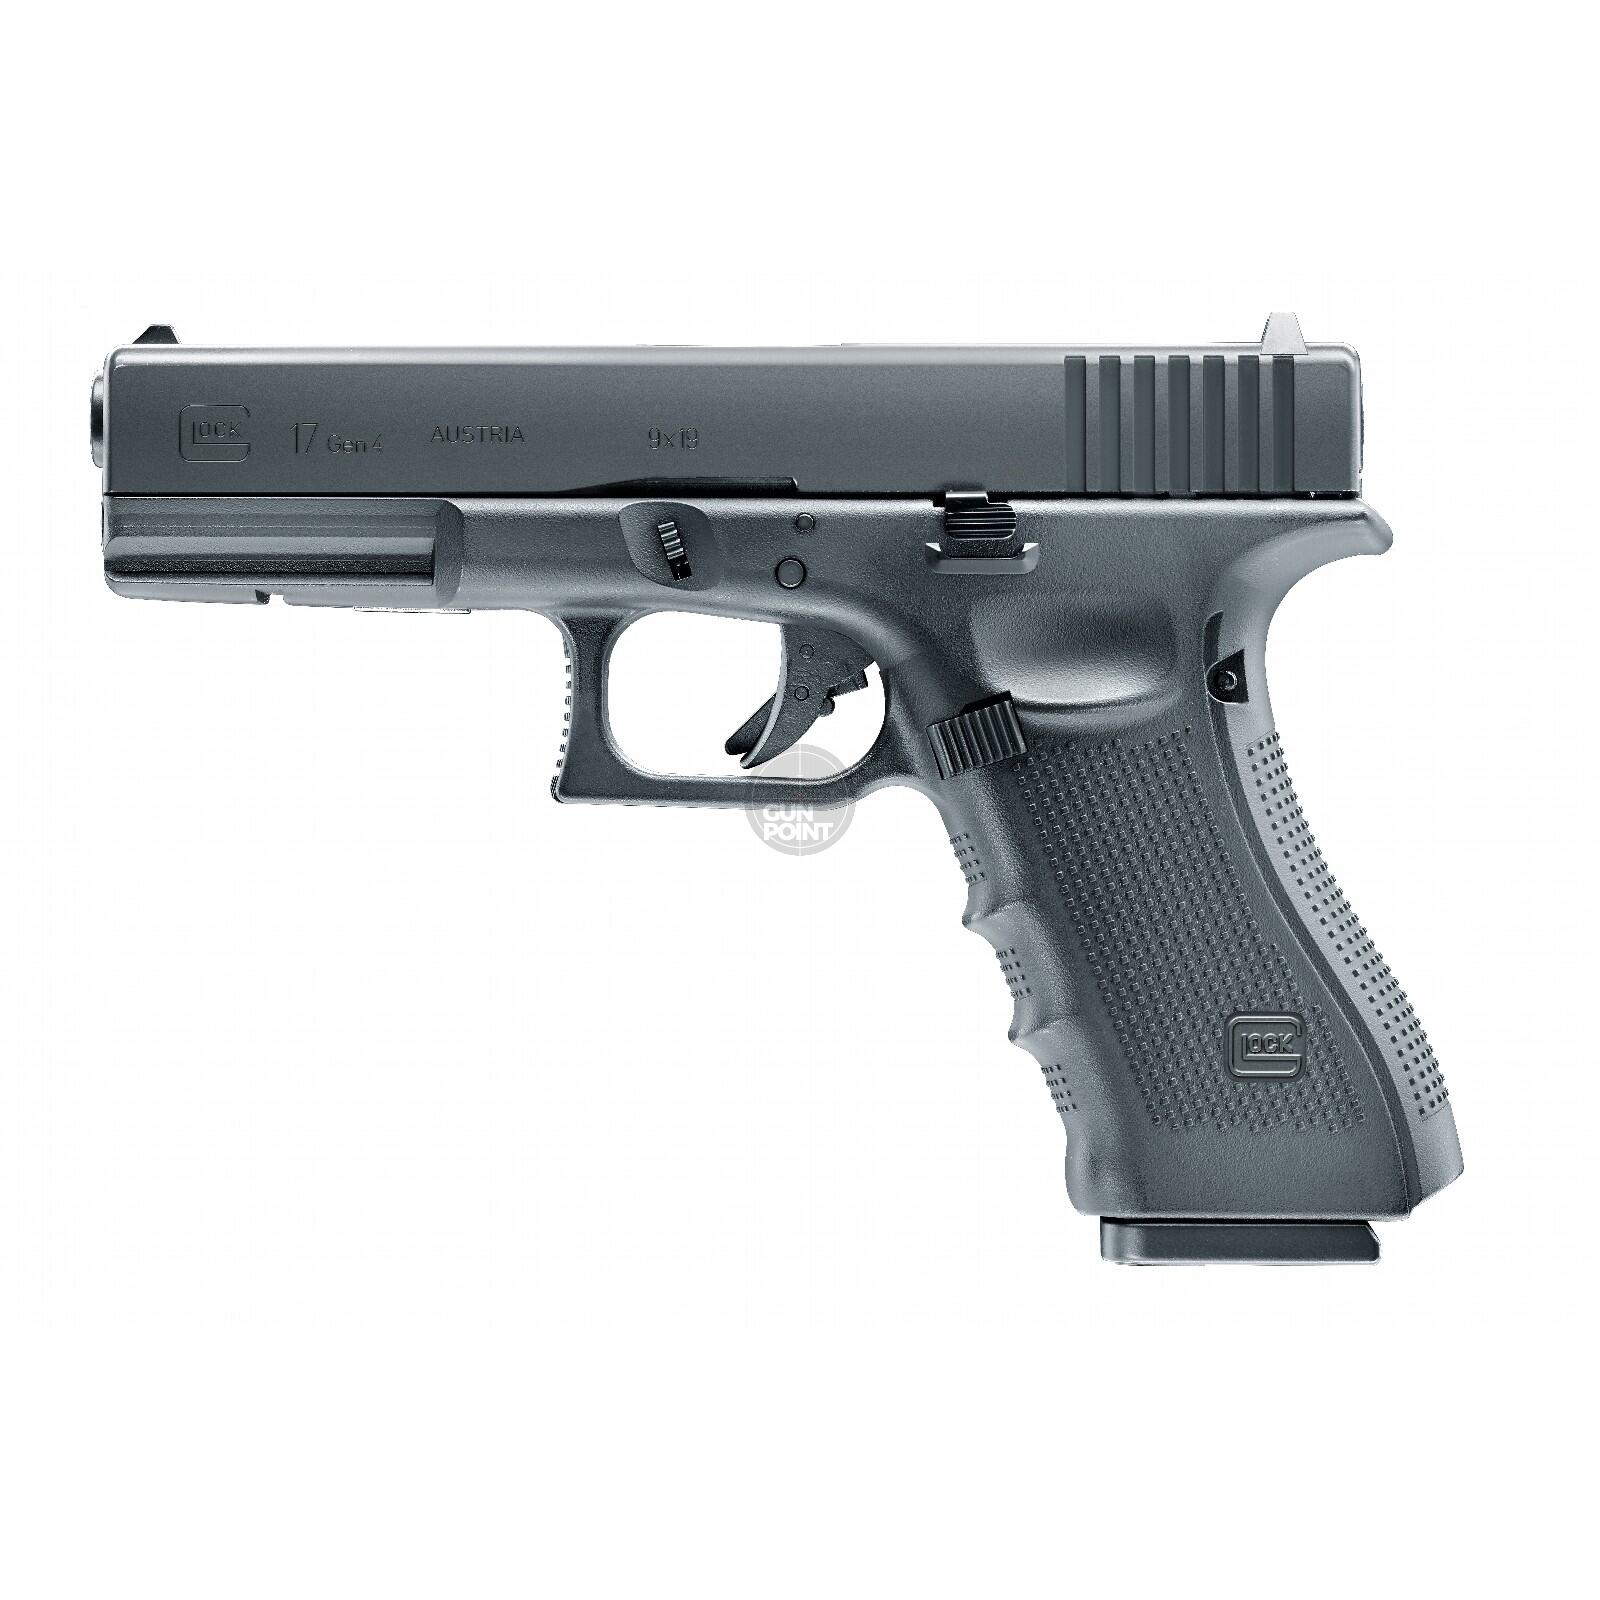 Luftpistole - Glock 17 Gen4 - Co2-System - Kal. 4,5 mm BB